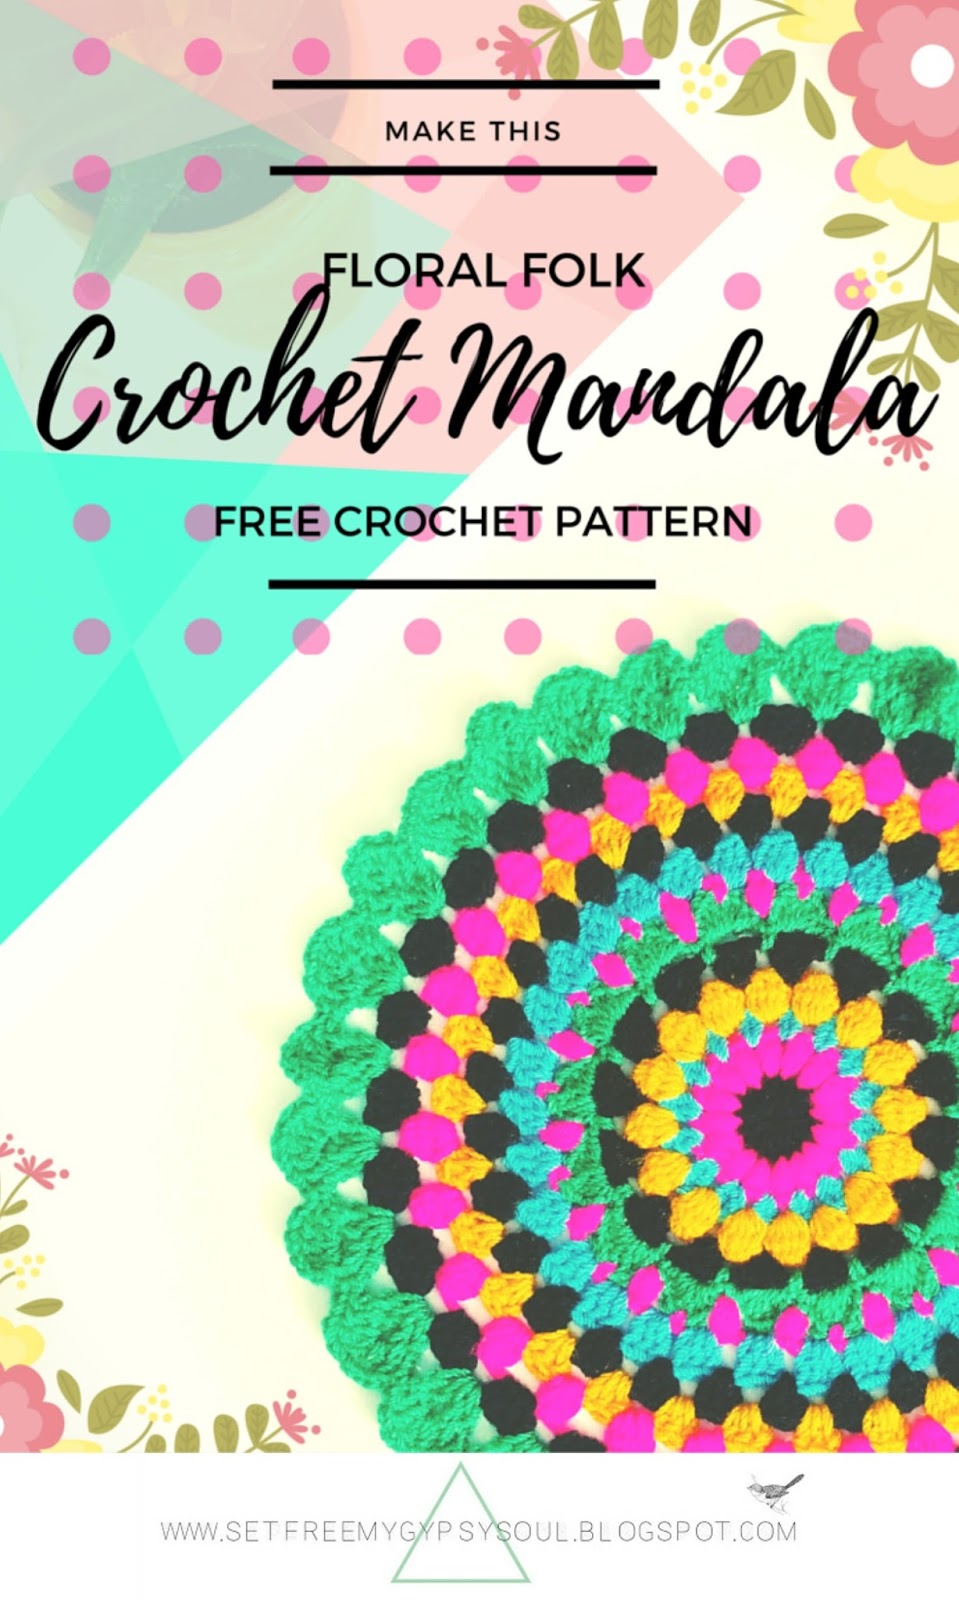 free crochet pattern bohemian bright colorful colour mandala folk floral